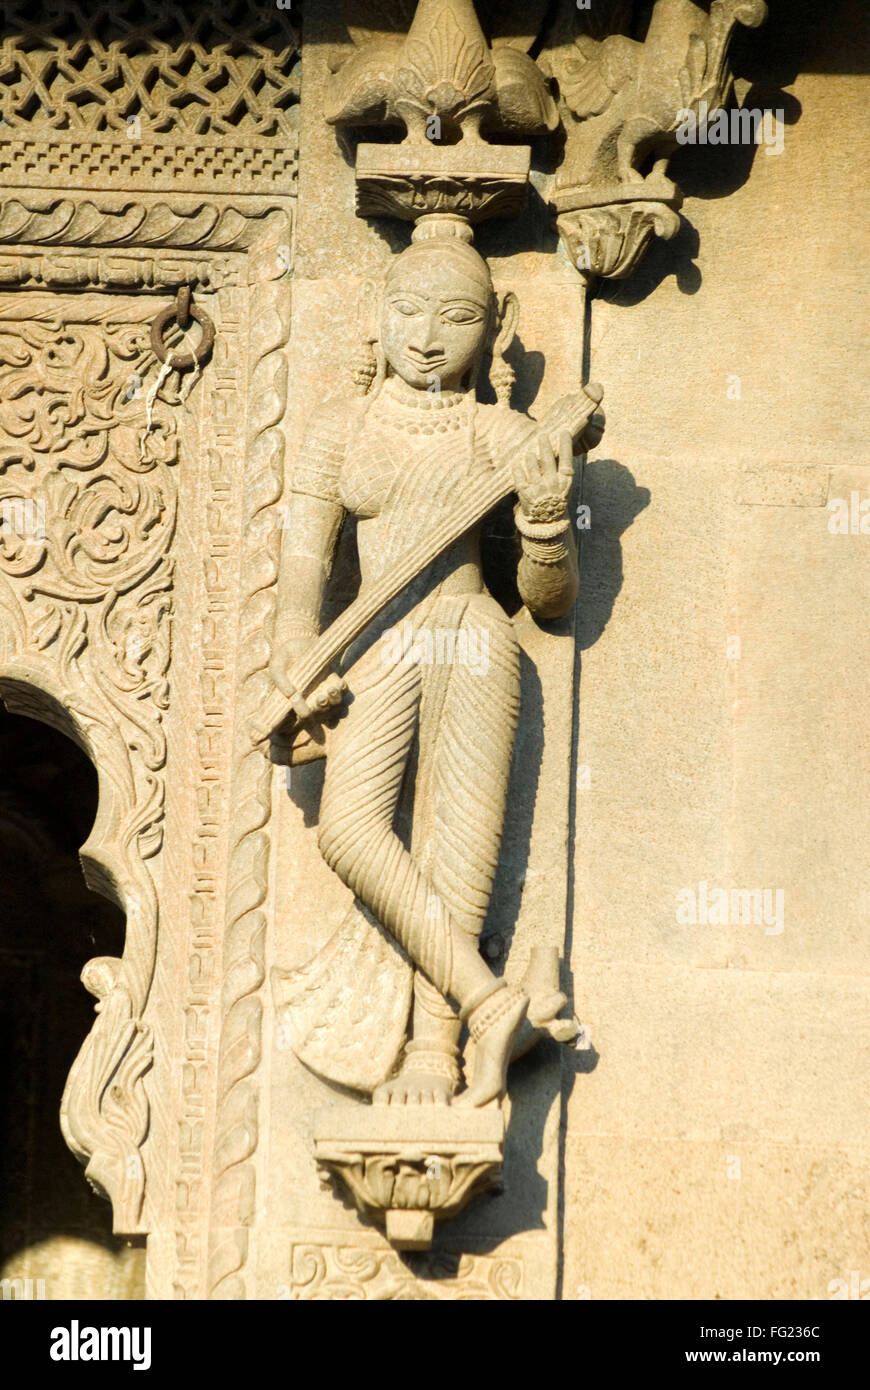 Woman playing veena music instrument carved in stone on wall of ...